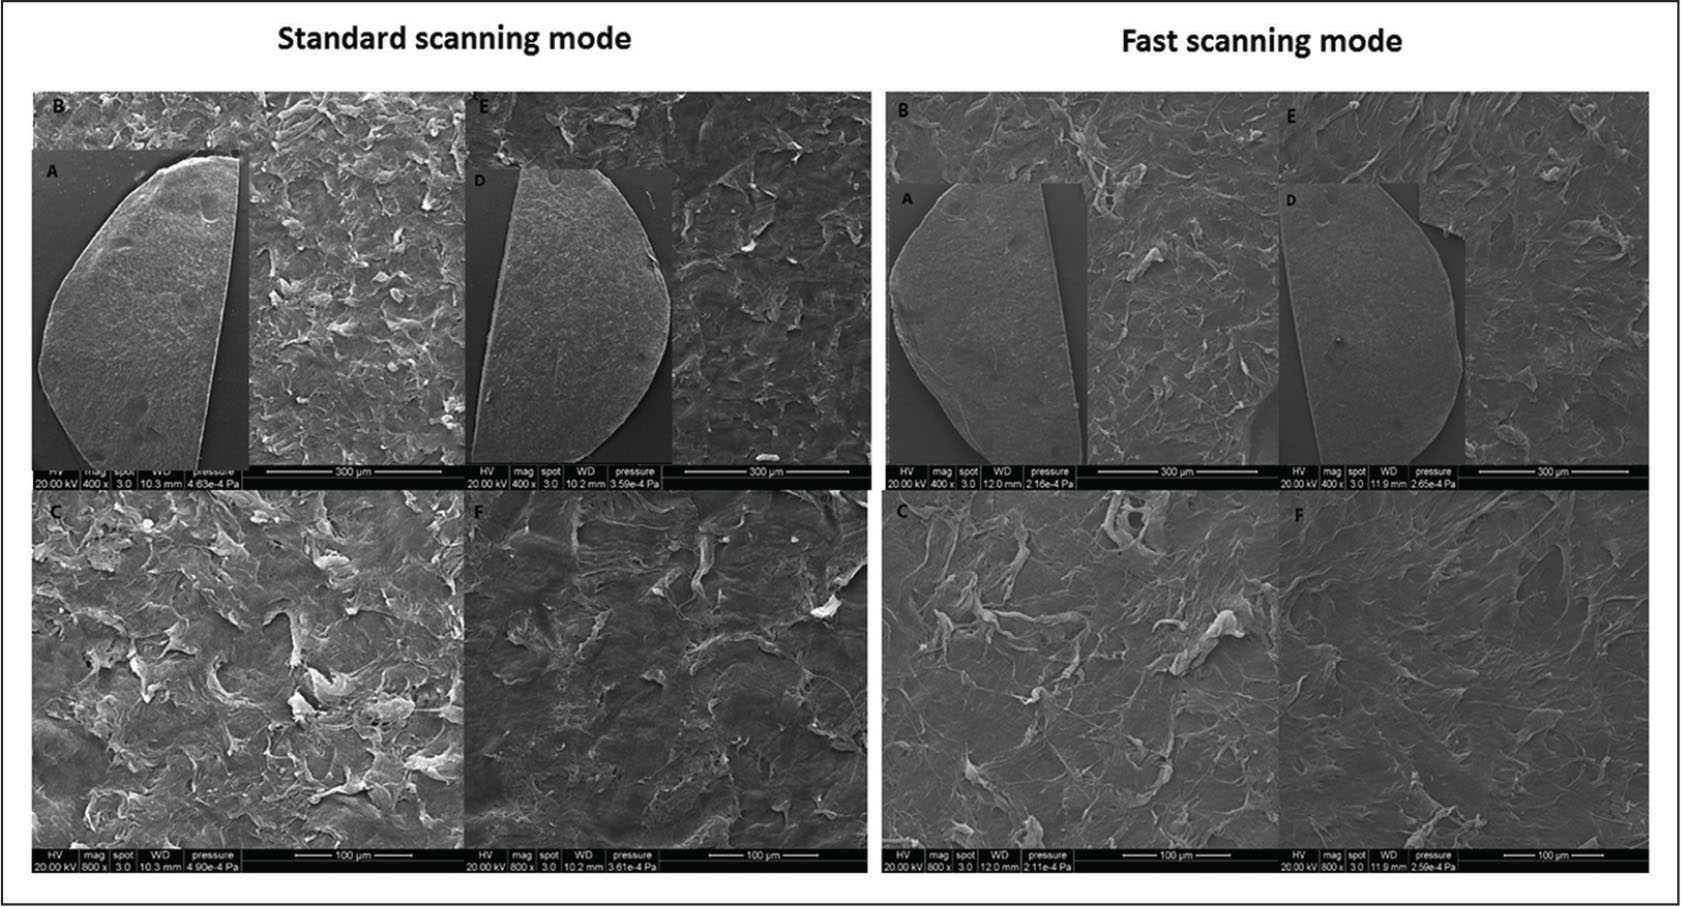 Environmental scanning electron microscopy showing the lenticular surface of sides 1 and 2: (A, D) 50×, (B, F) 400×, and (C, F) 800× original magnification of the standard scanning and fast scanning groups, respectively.